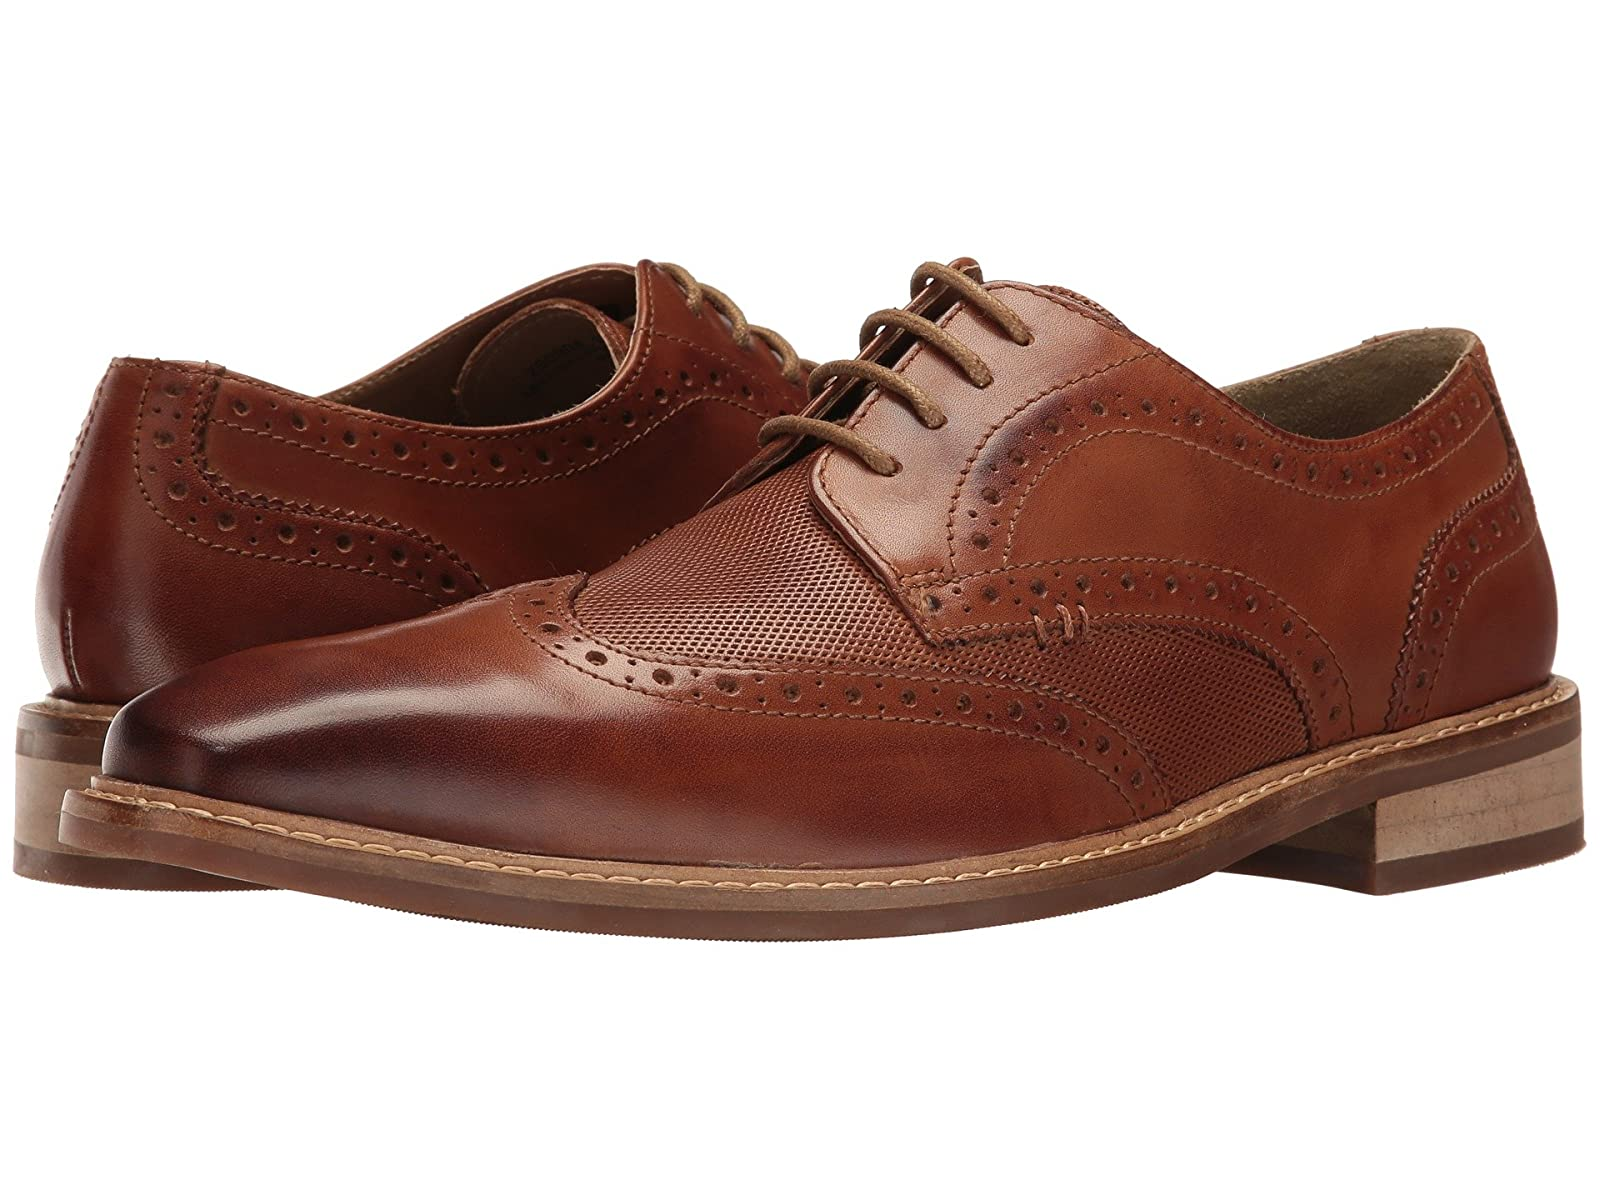 Giorgio Brutini RivenAtmospheric grades have affordable shoes